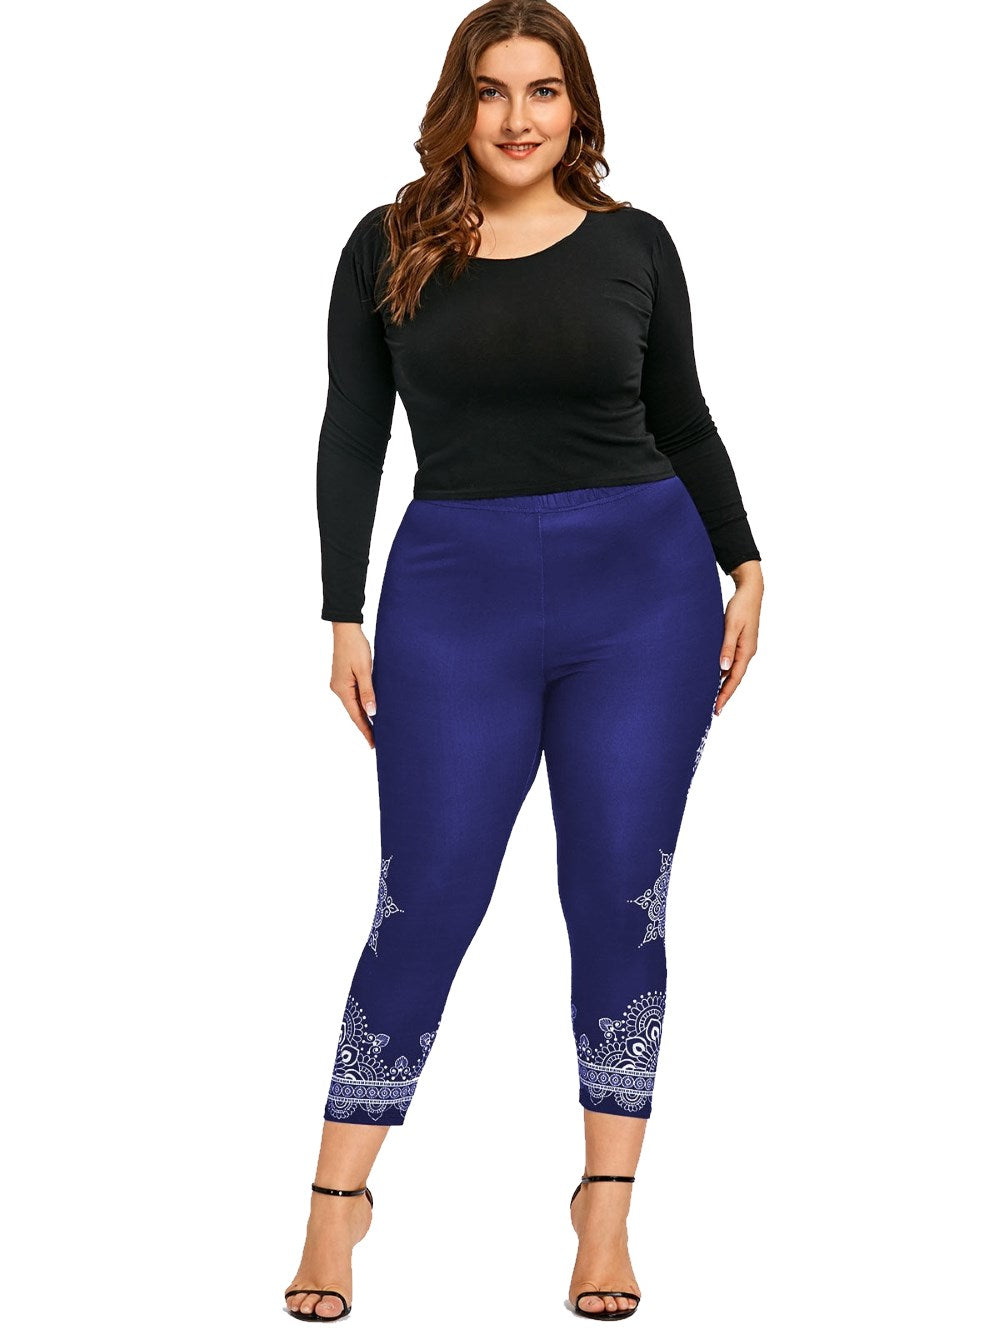 GAMISS Plus Size Fitness Leggins deep blue